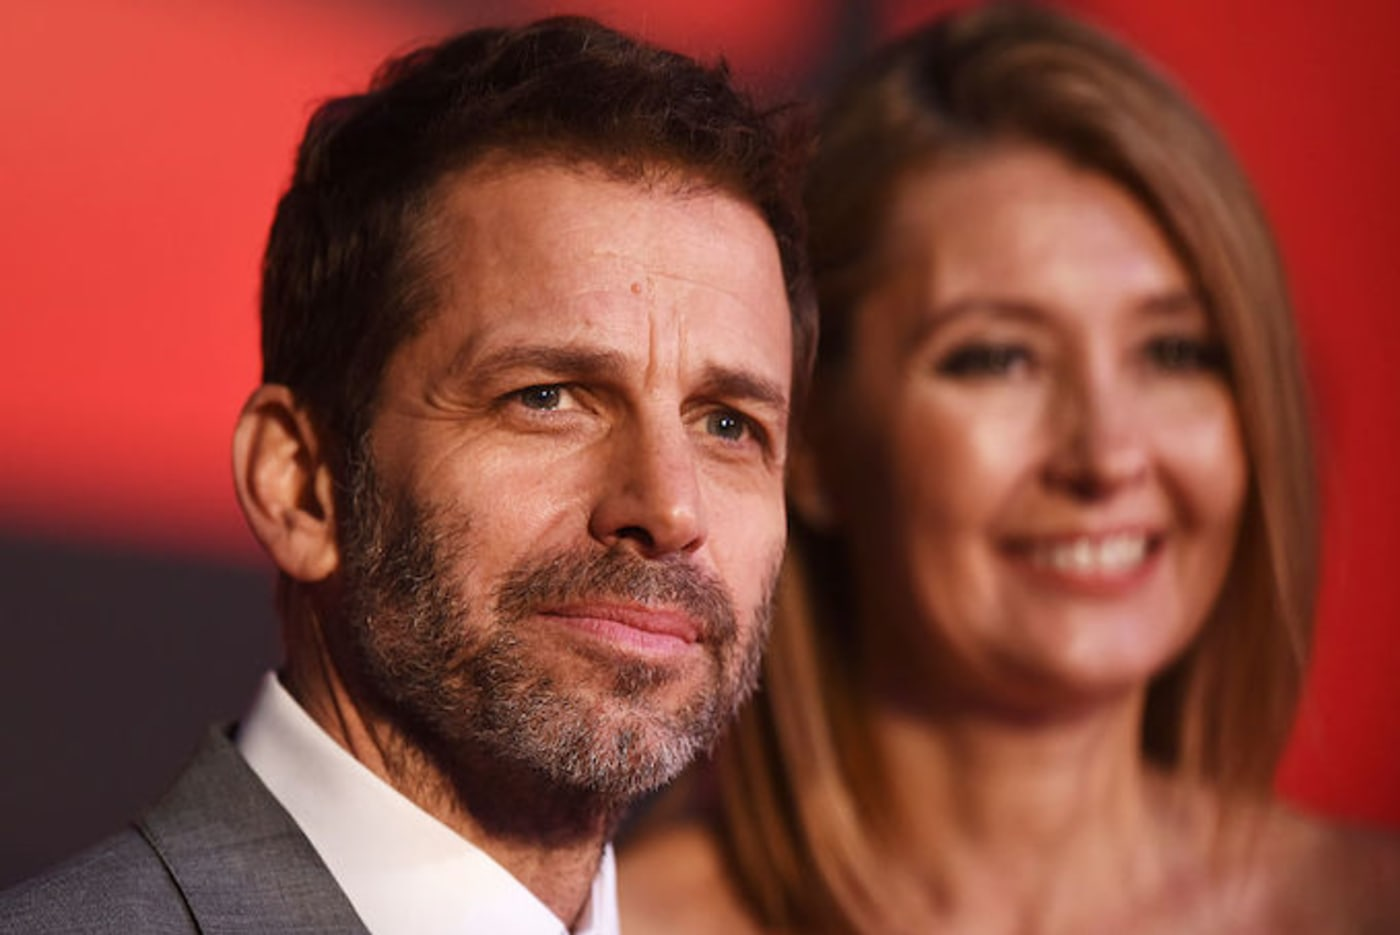 This is Zack Snyder.